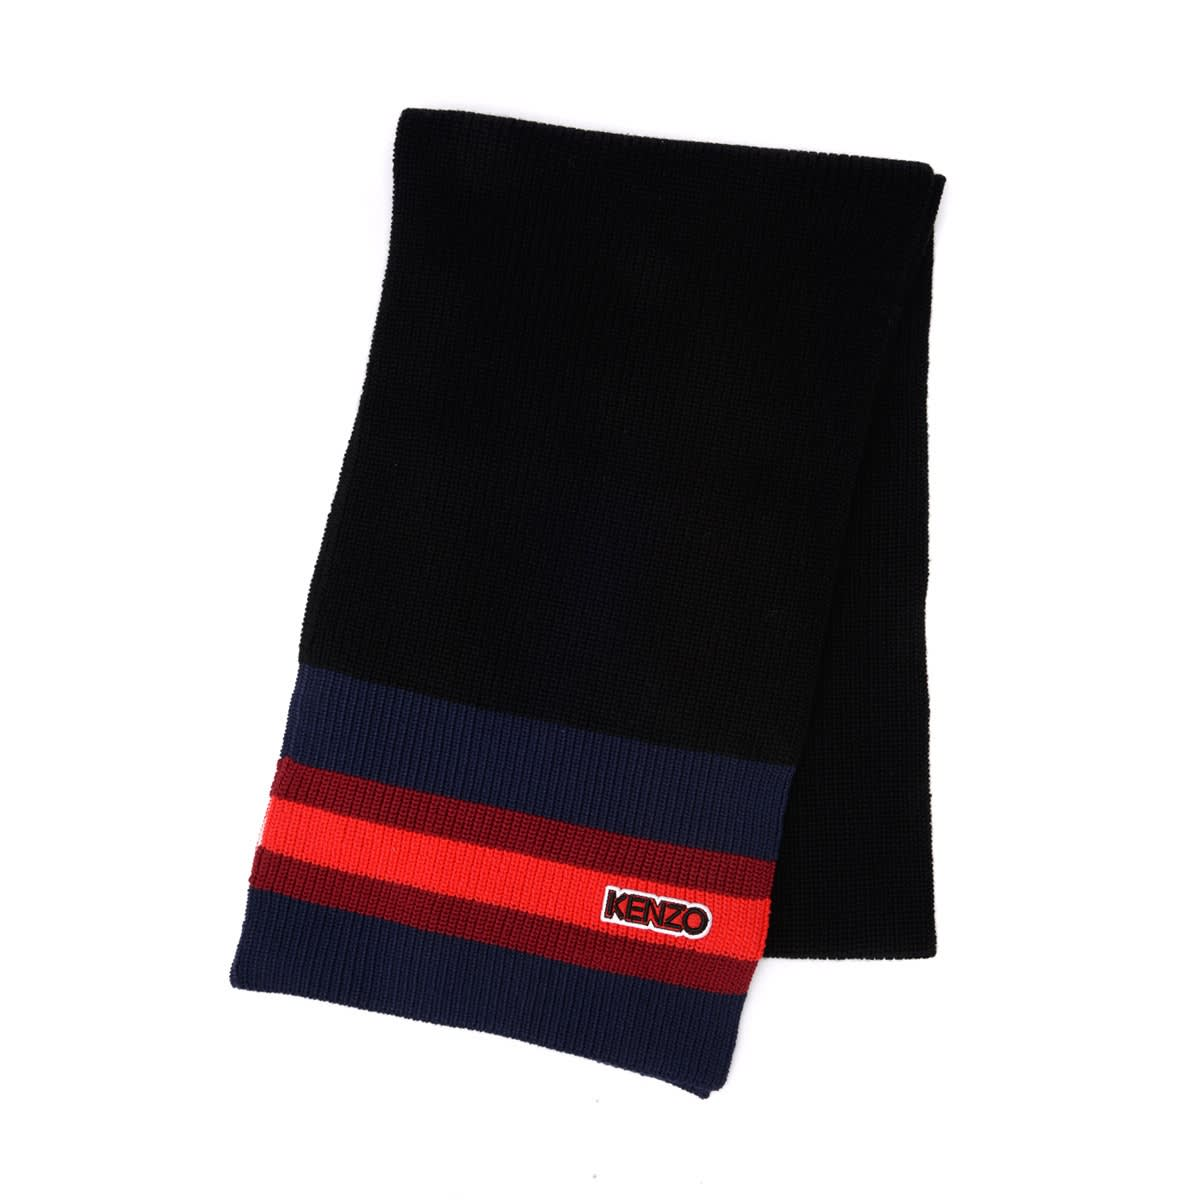 Kenzo Scarf In Black Wool With Multicolor Striped Pattern In Nero